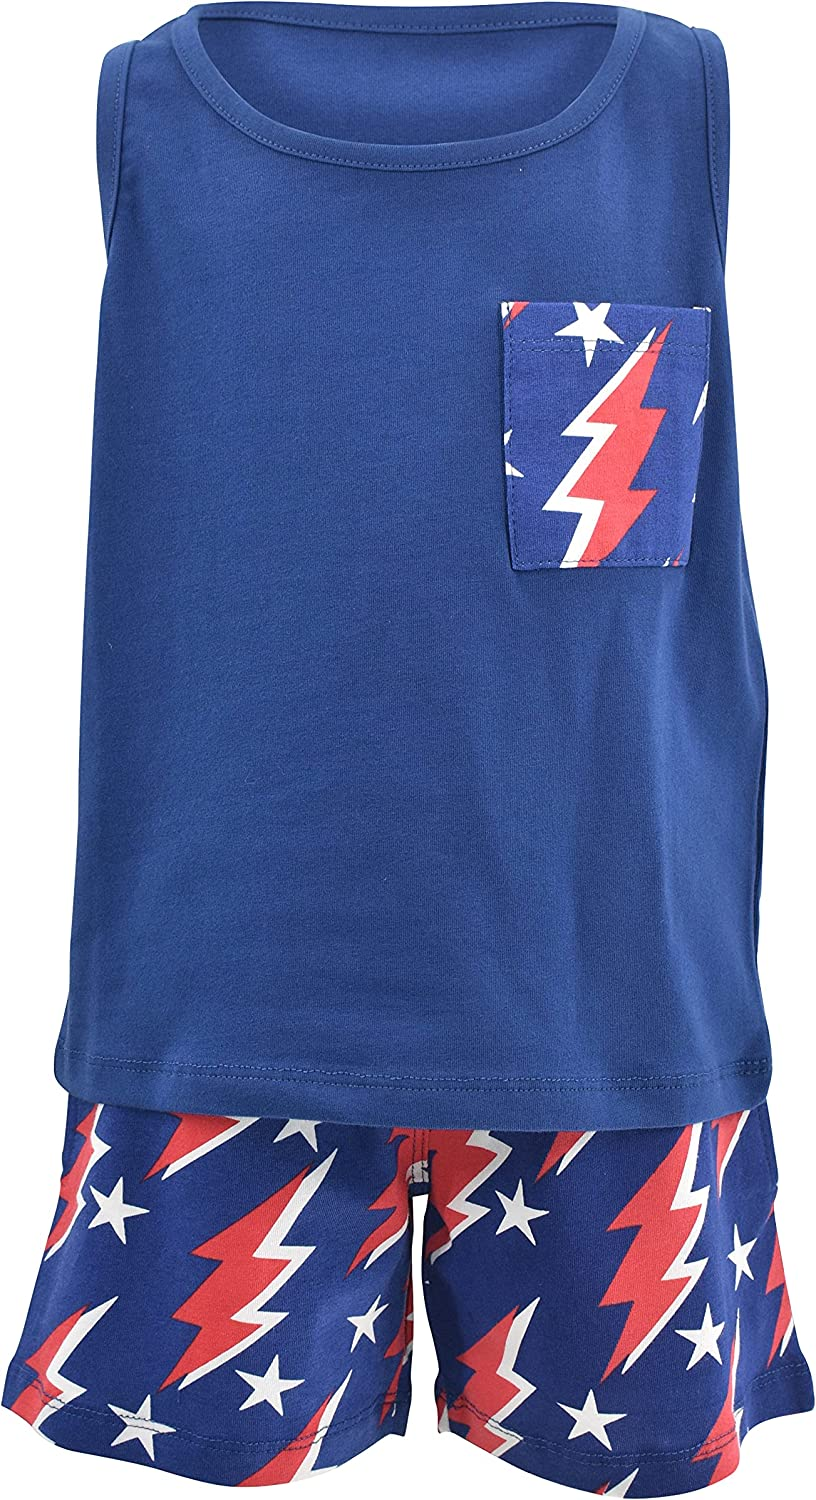 Unique Baby Boys Lightning 4th of July Patriotic Shorts Outfit